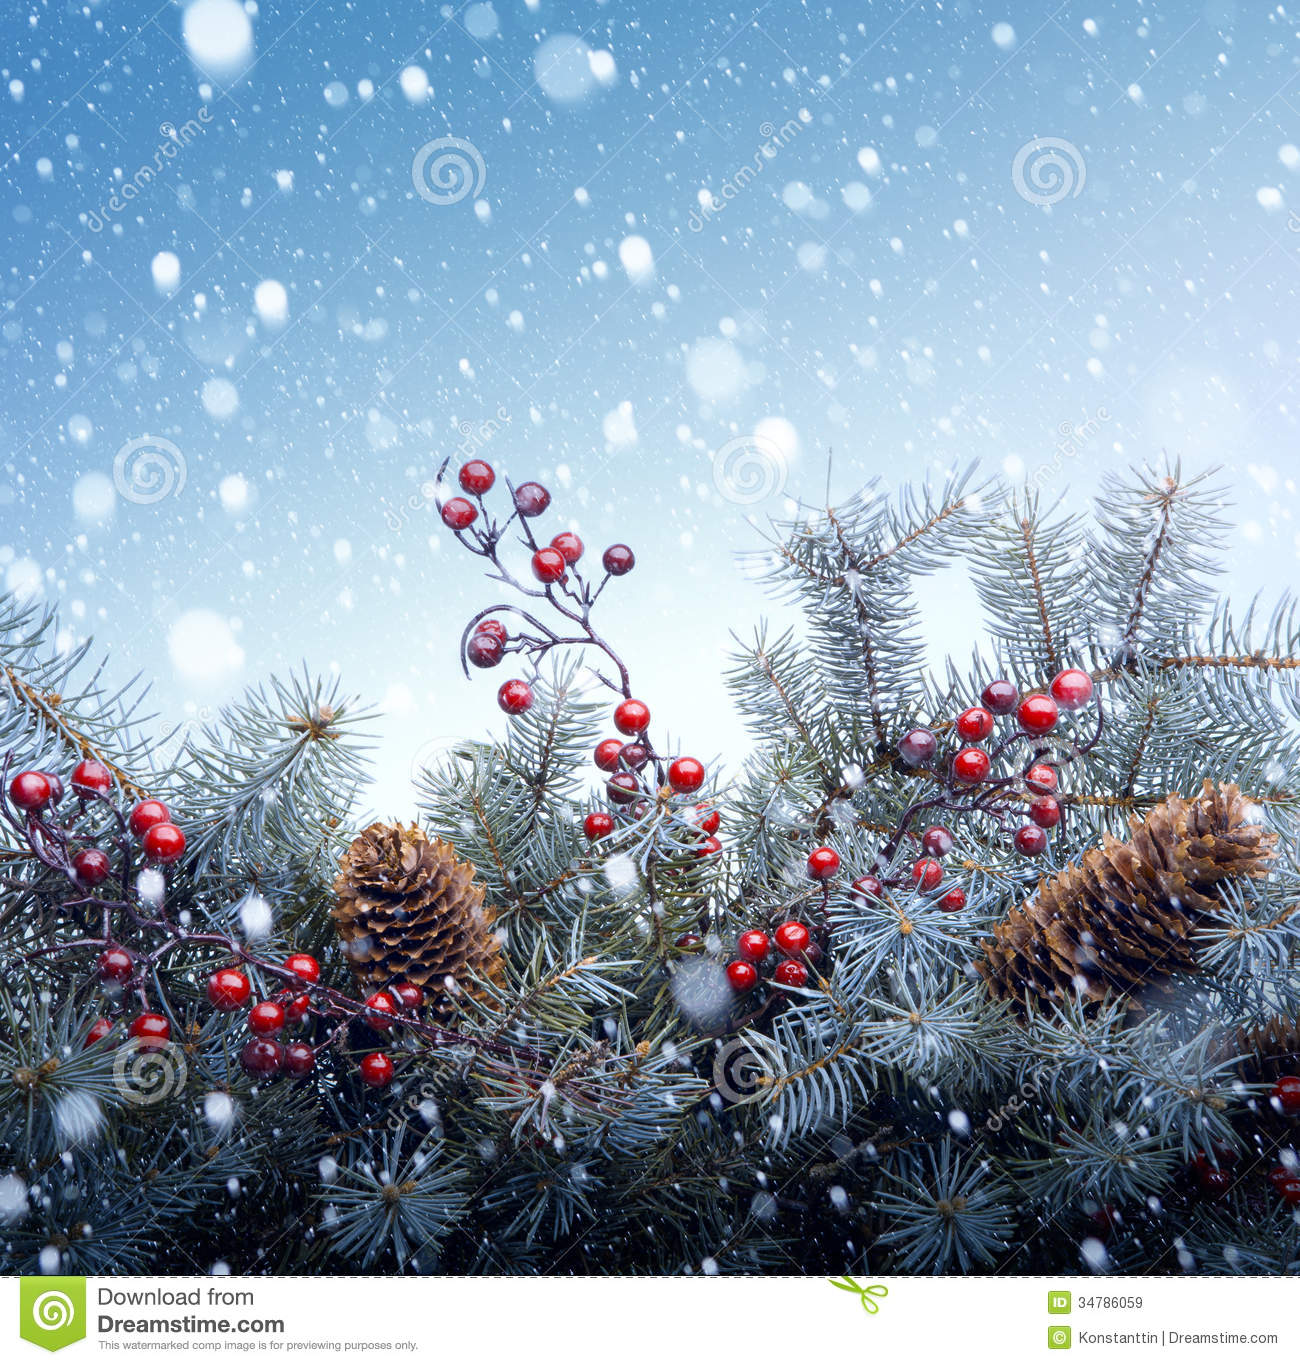 1300x1365 - Christmas Trees Backgrounds 12